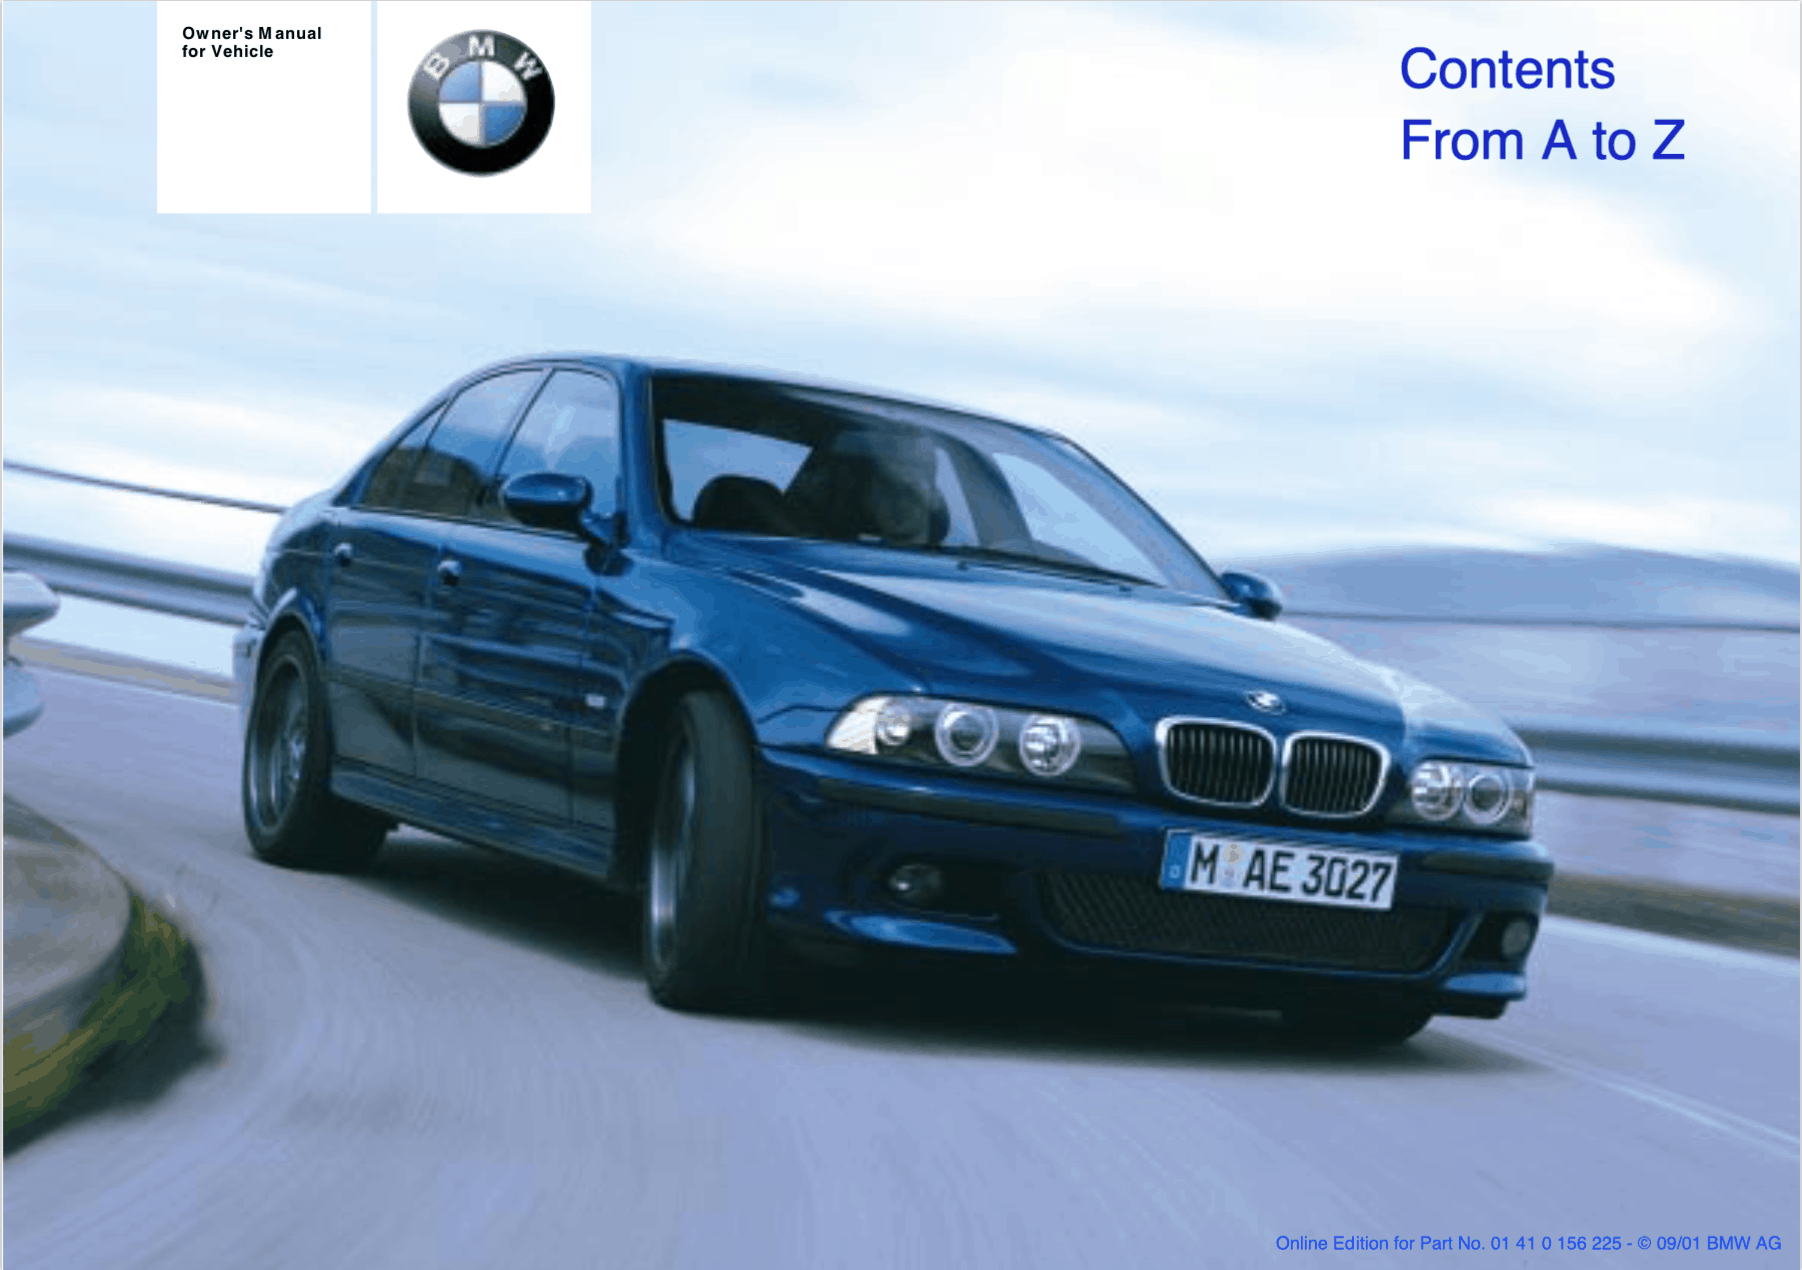 e39 m5 owners manual download pdf